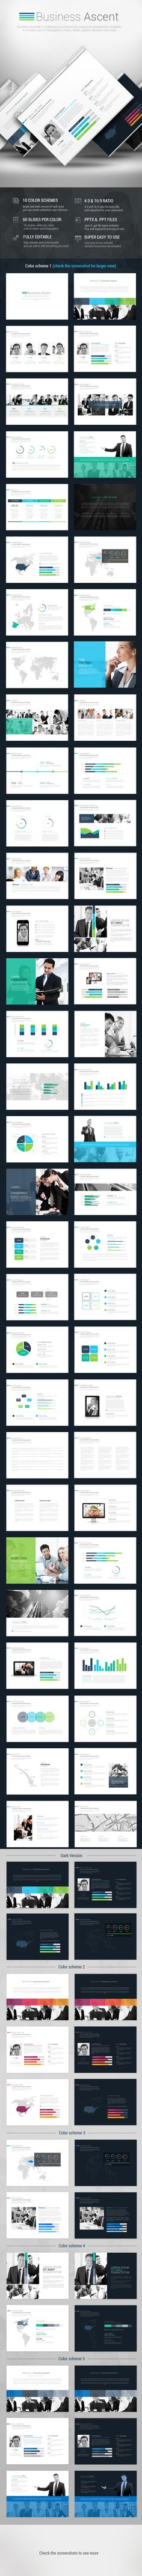 Template Formal Letter%0A Business Ascent Powerpoint Presentation Template